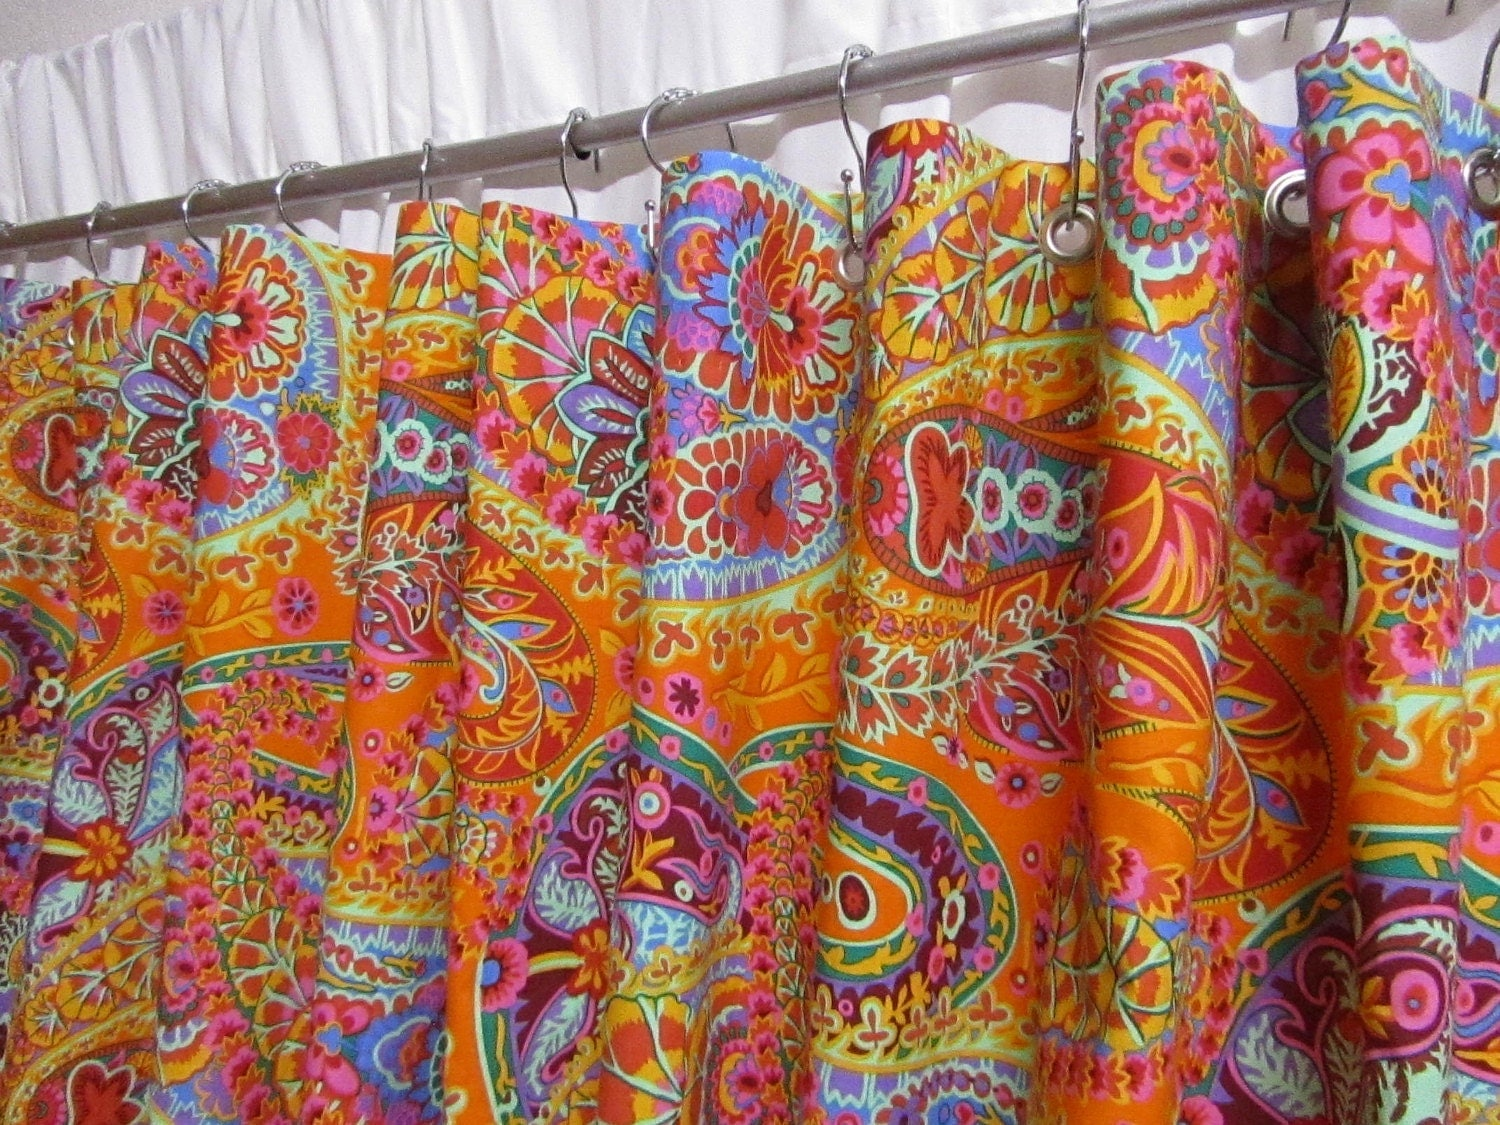 boho shower curtain paisley shower curtain tangerine orange shower curtain bohemian home decor